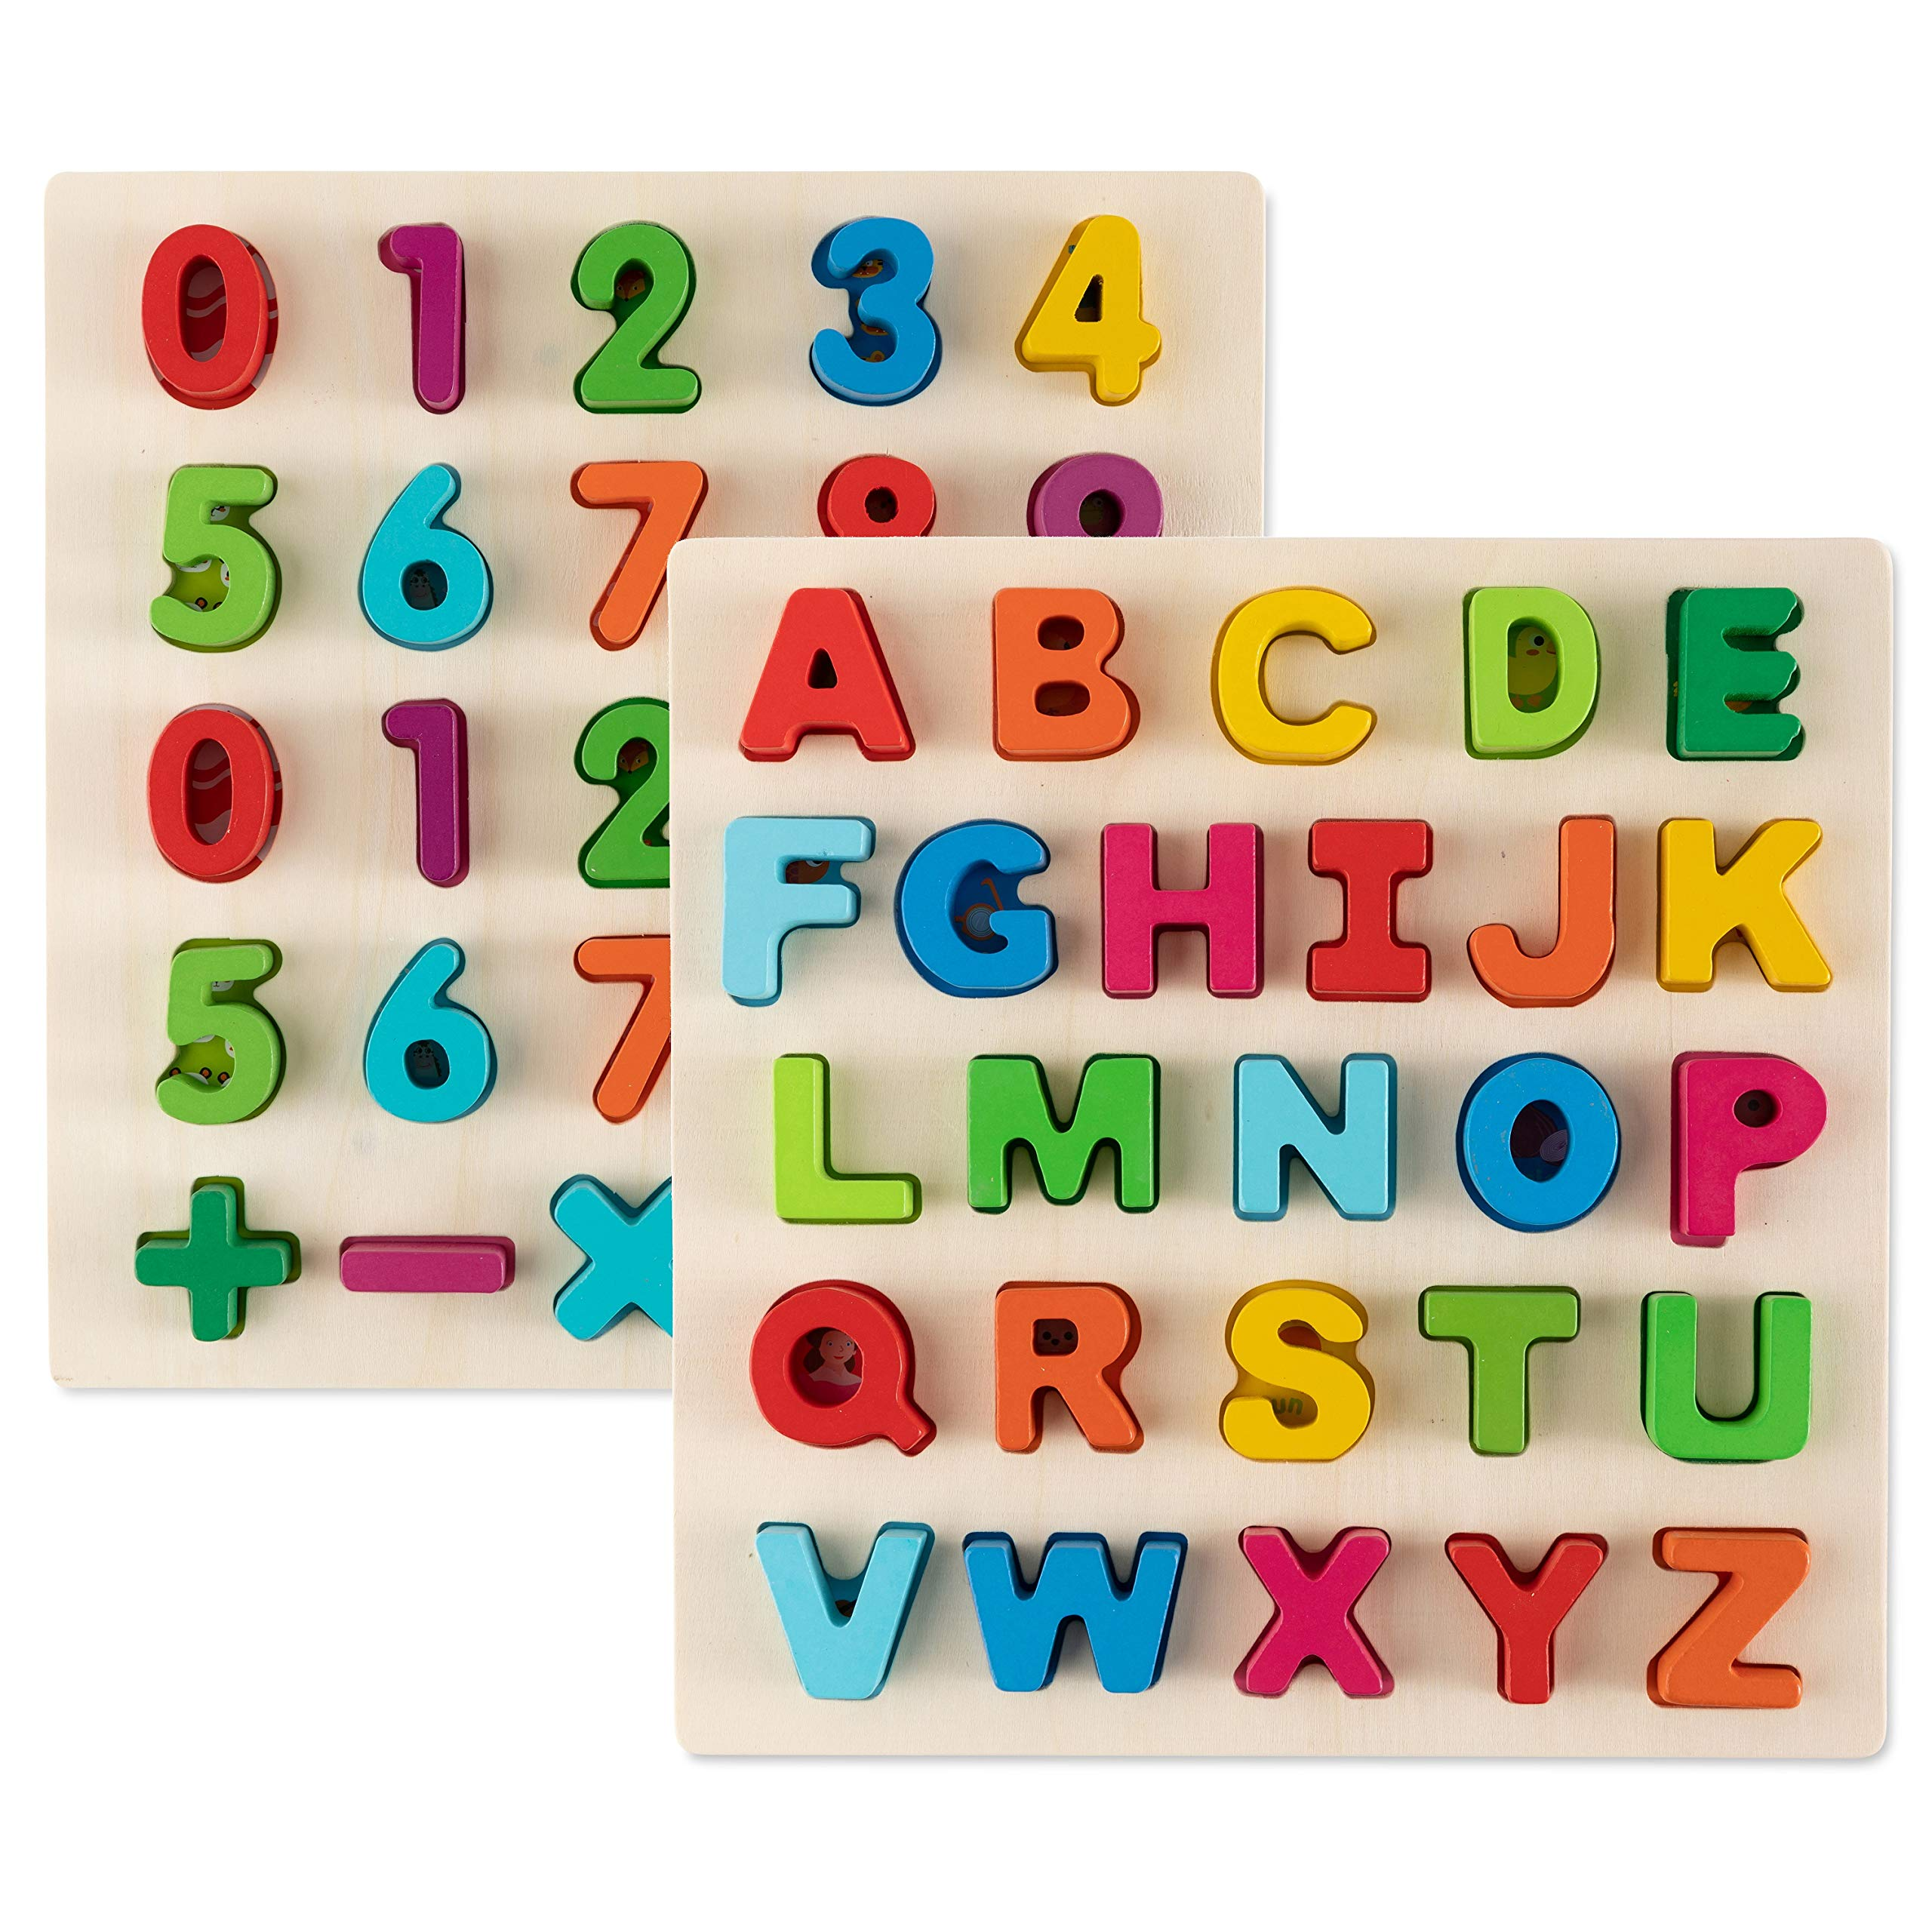 Toy To Enjoy Alphabet Puzzles - Wooden Upper Case Letter and Number Learning Board Toy - Ideal for Early Educational Learning for Kindergarten Toddlers & Preschools by Toy To Enjoy